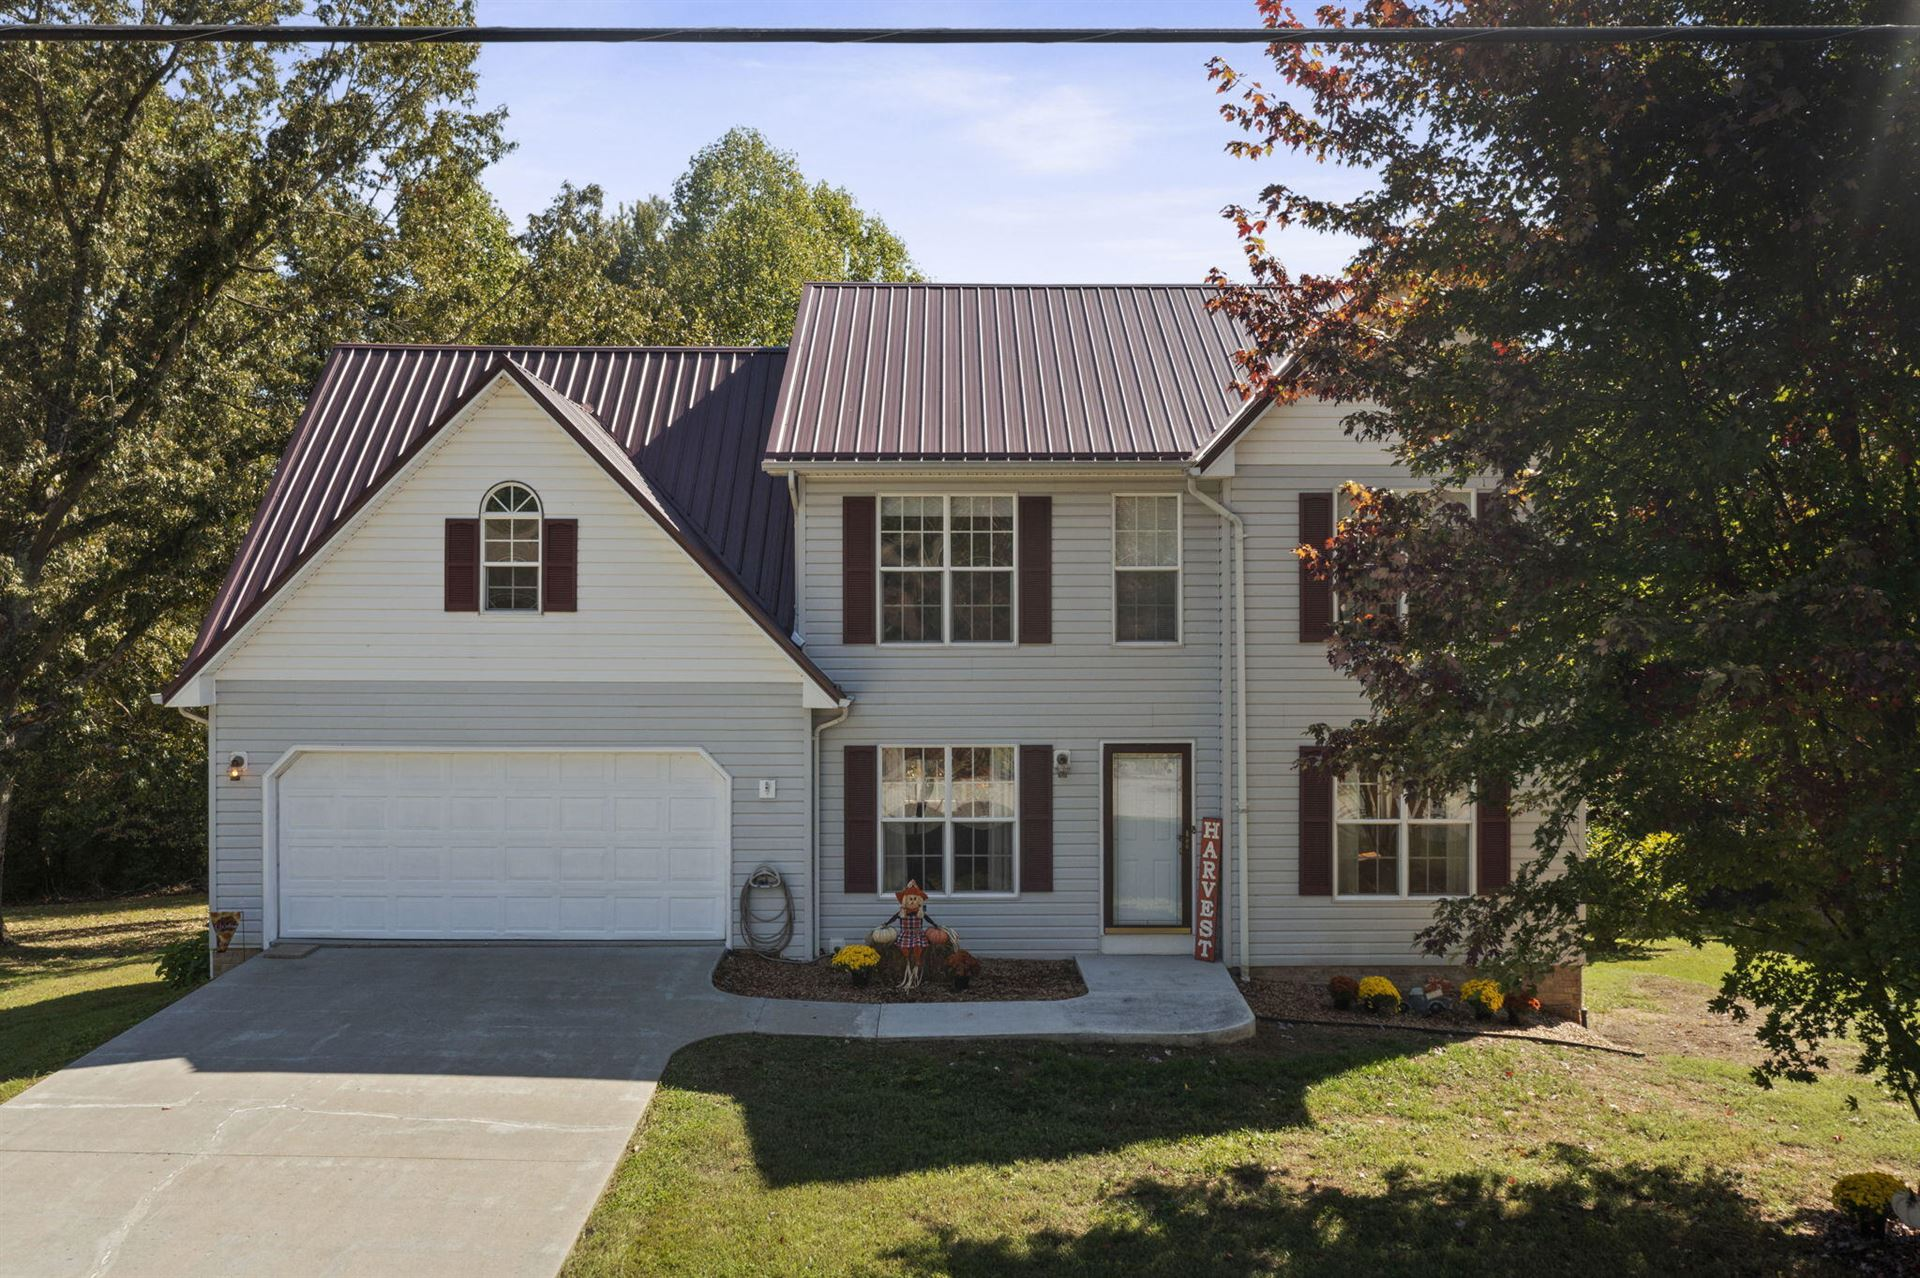 Photo of 1077 Le Amron Drive, Kingsport, TN 37665 (MLS # 9930096)